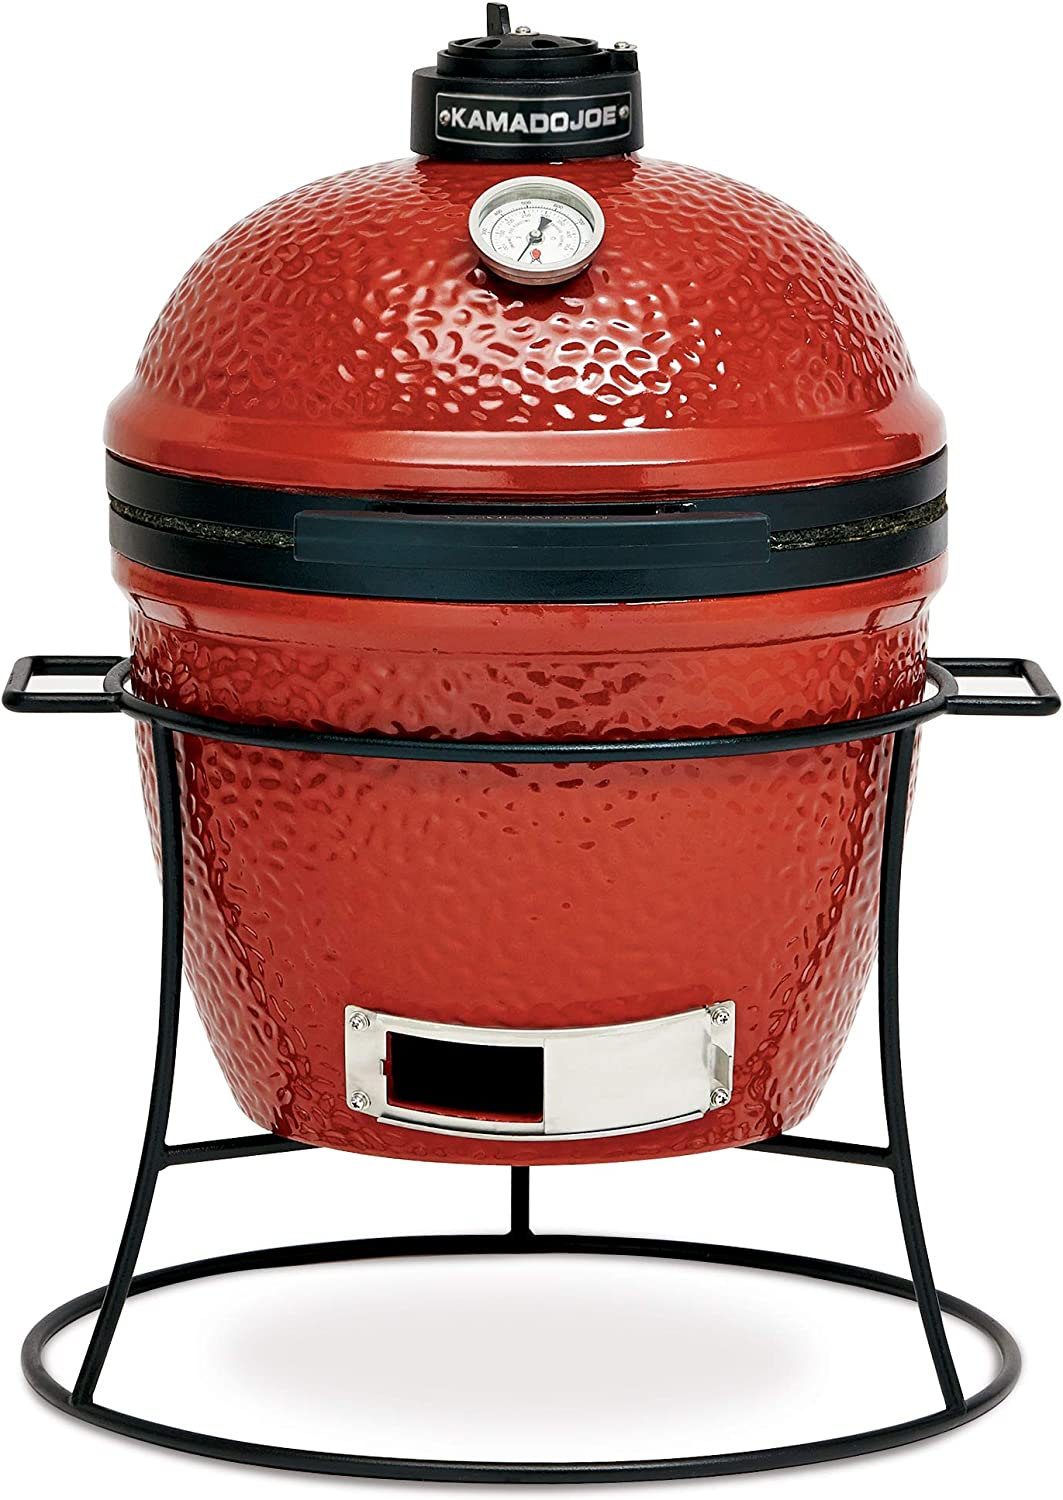 Kamado Joe KJ13RH Joe Jr Charcoal Grill: A flexible temperature controlled Kamado grill